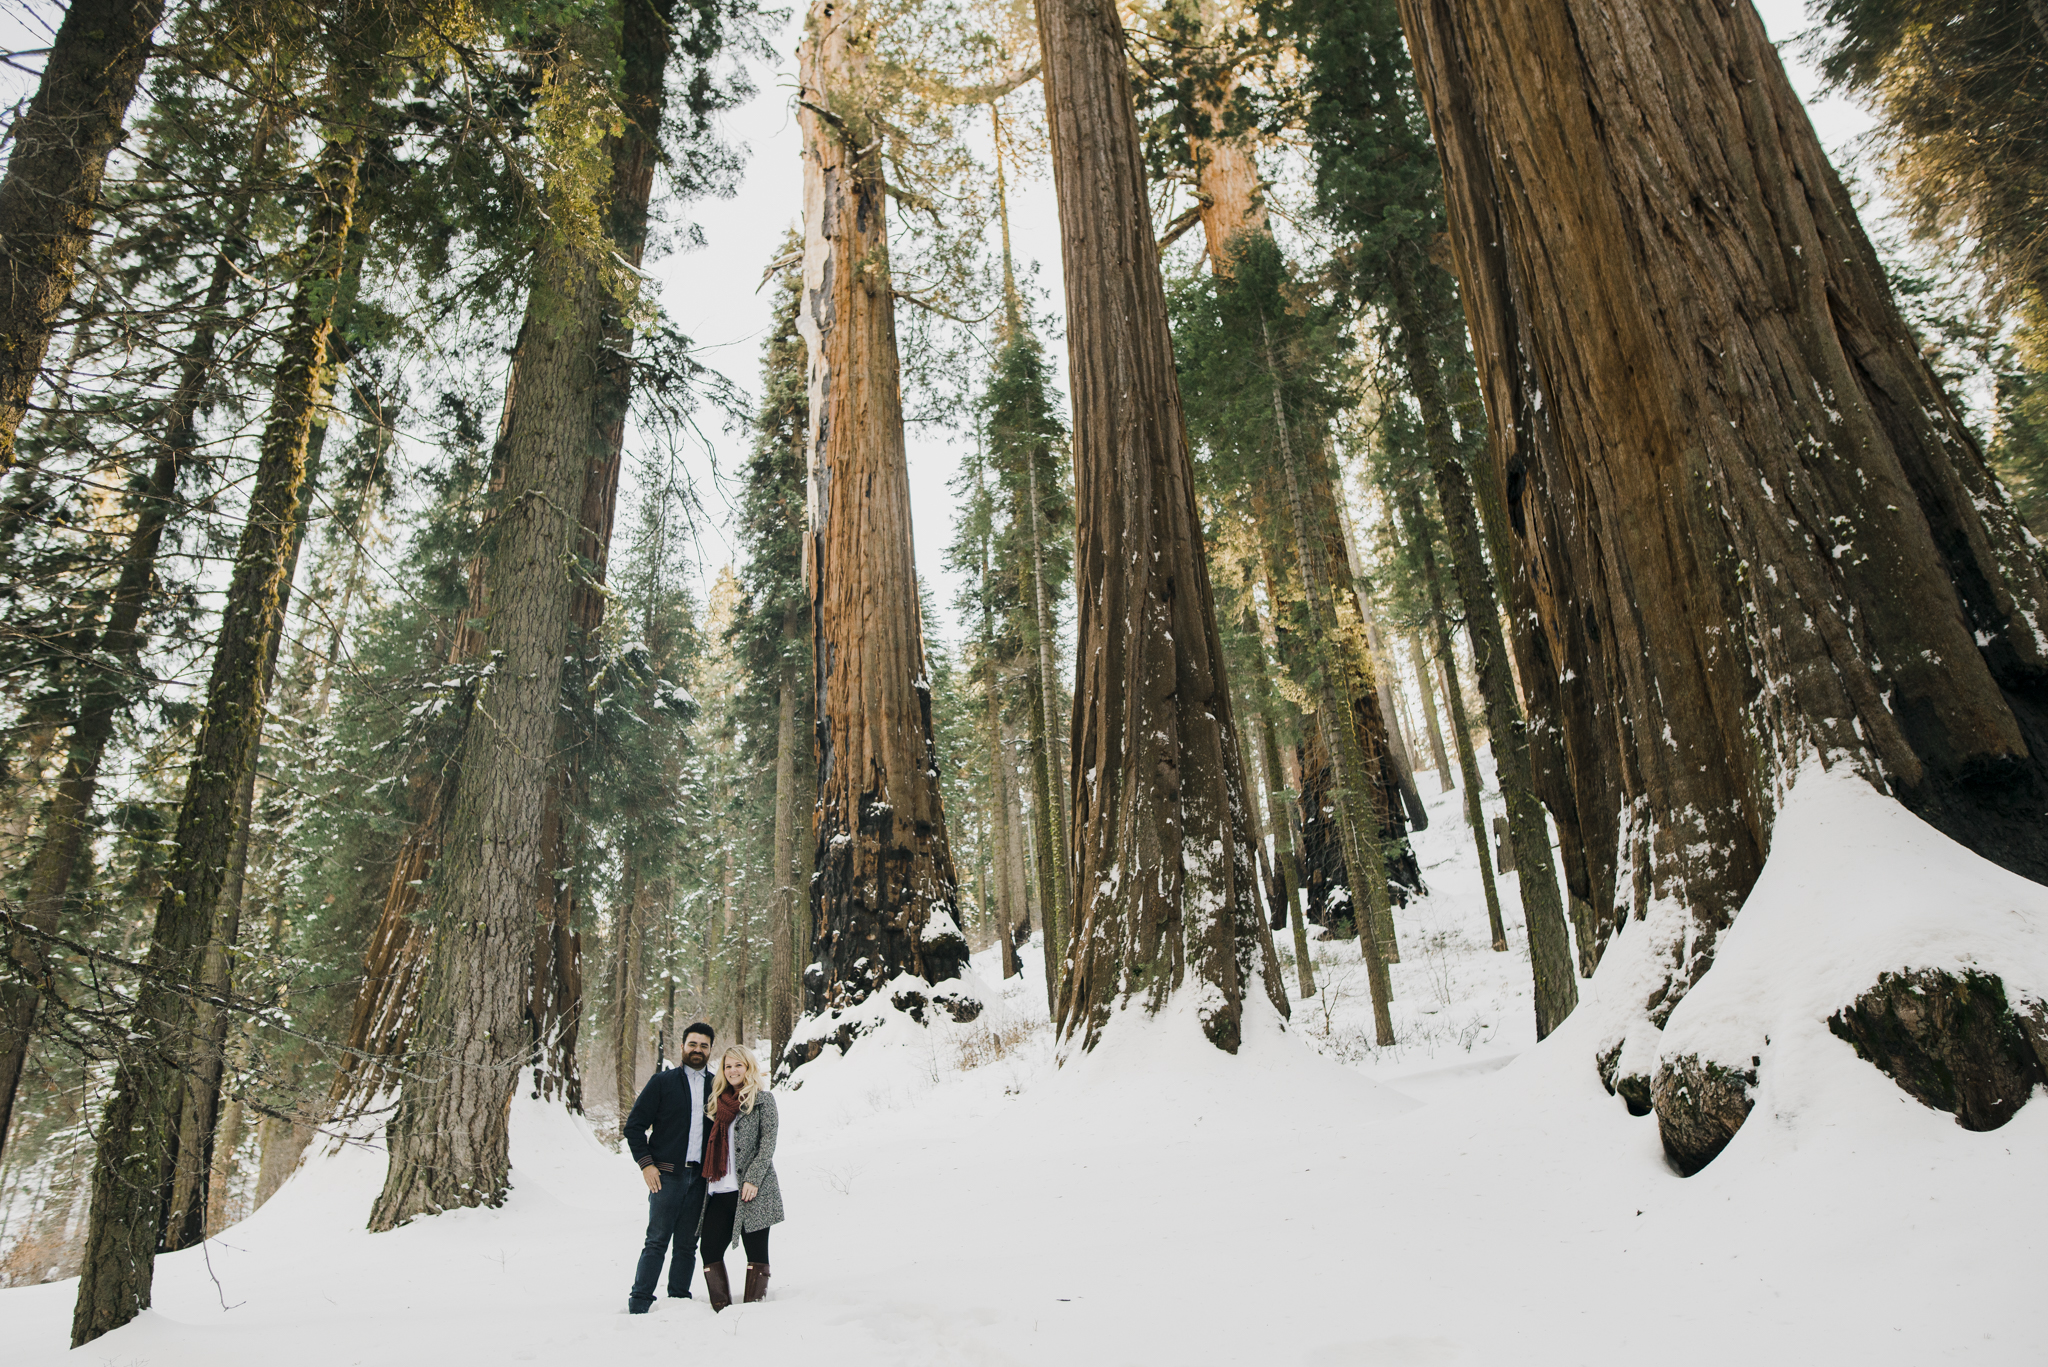 ©Isaiah-&-Taylor-Photography---George-&-Alyssa-Engagement---Sequoia-National-Park,-California-5.jpg